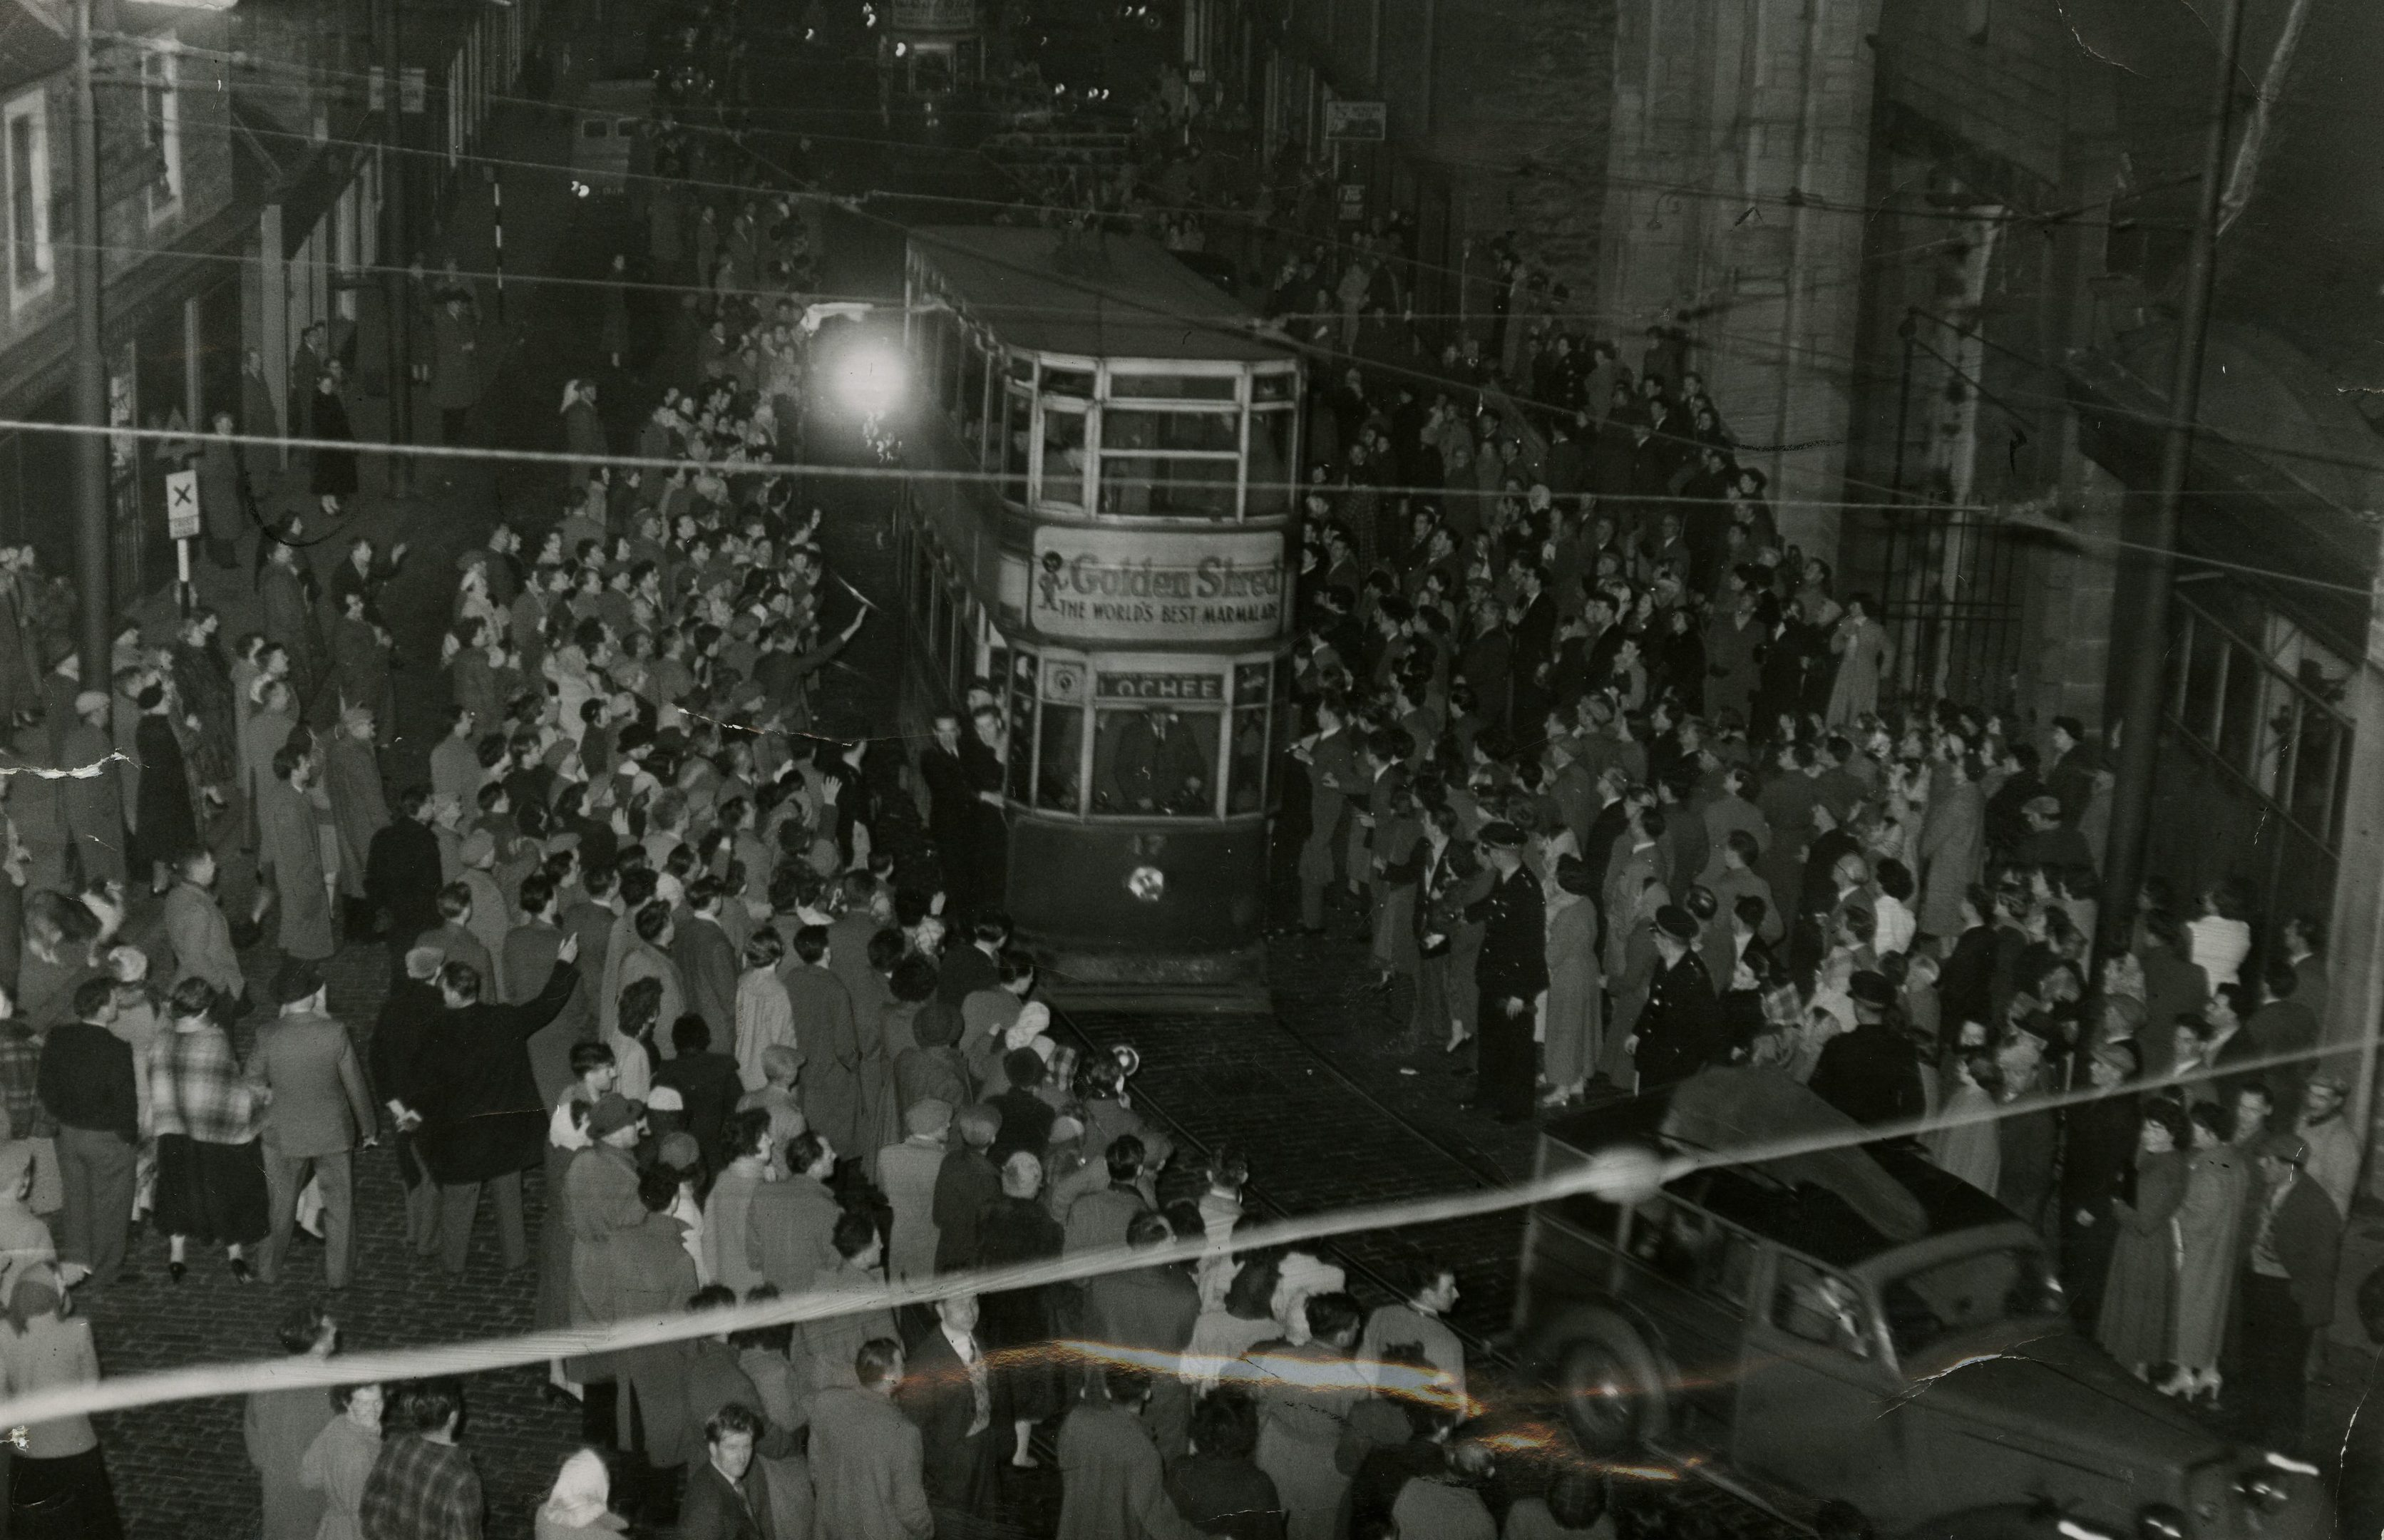 The crowd which witnessed the final tram journey in Dundee.